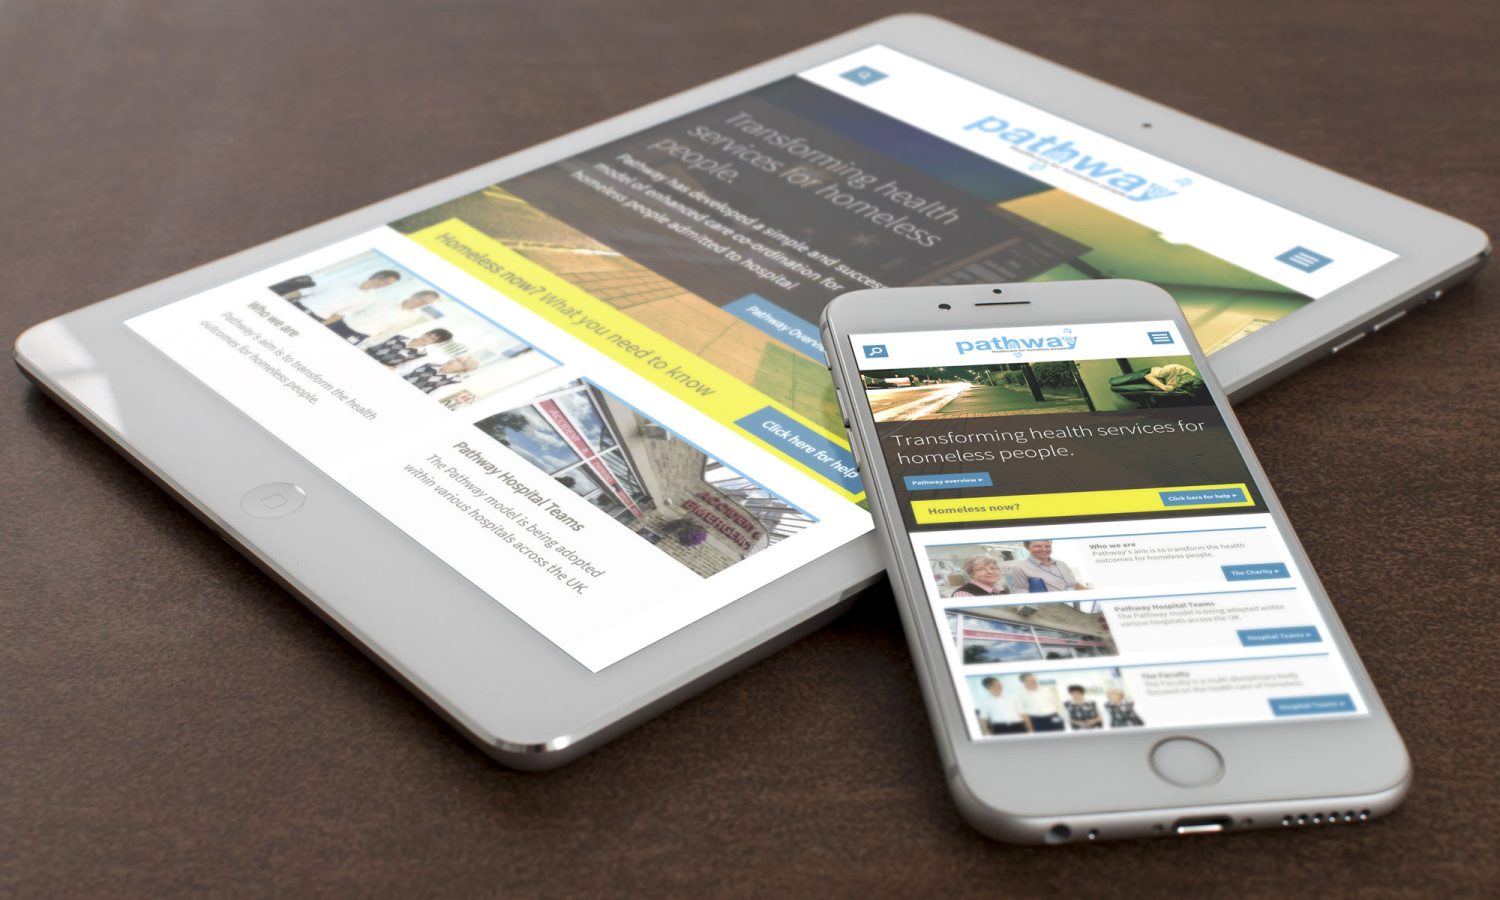 Pathway website on mobile devices